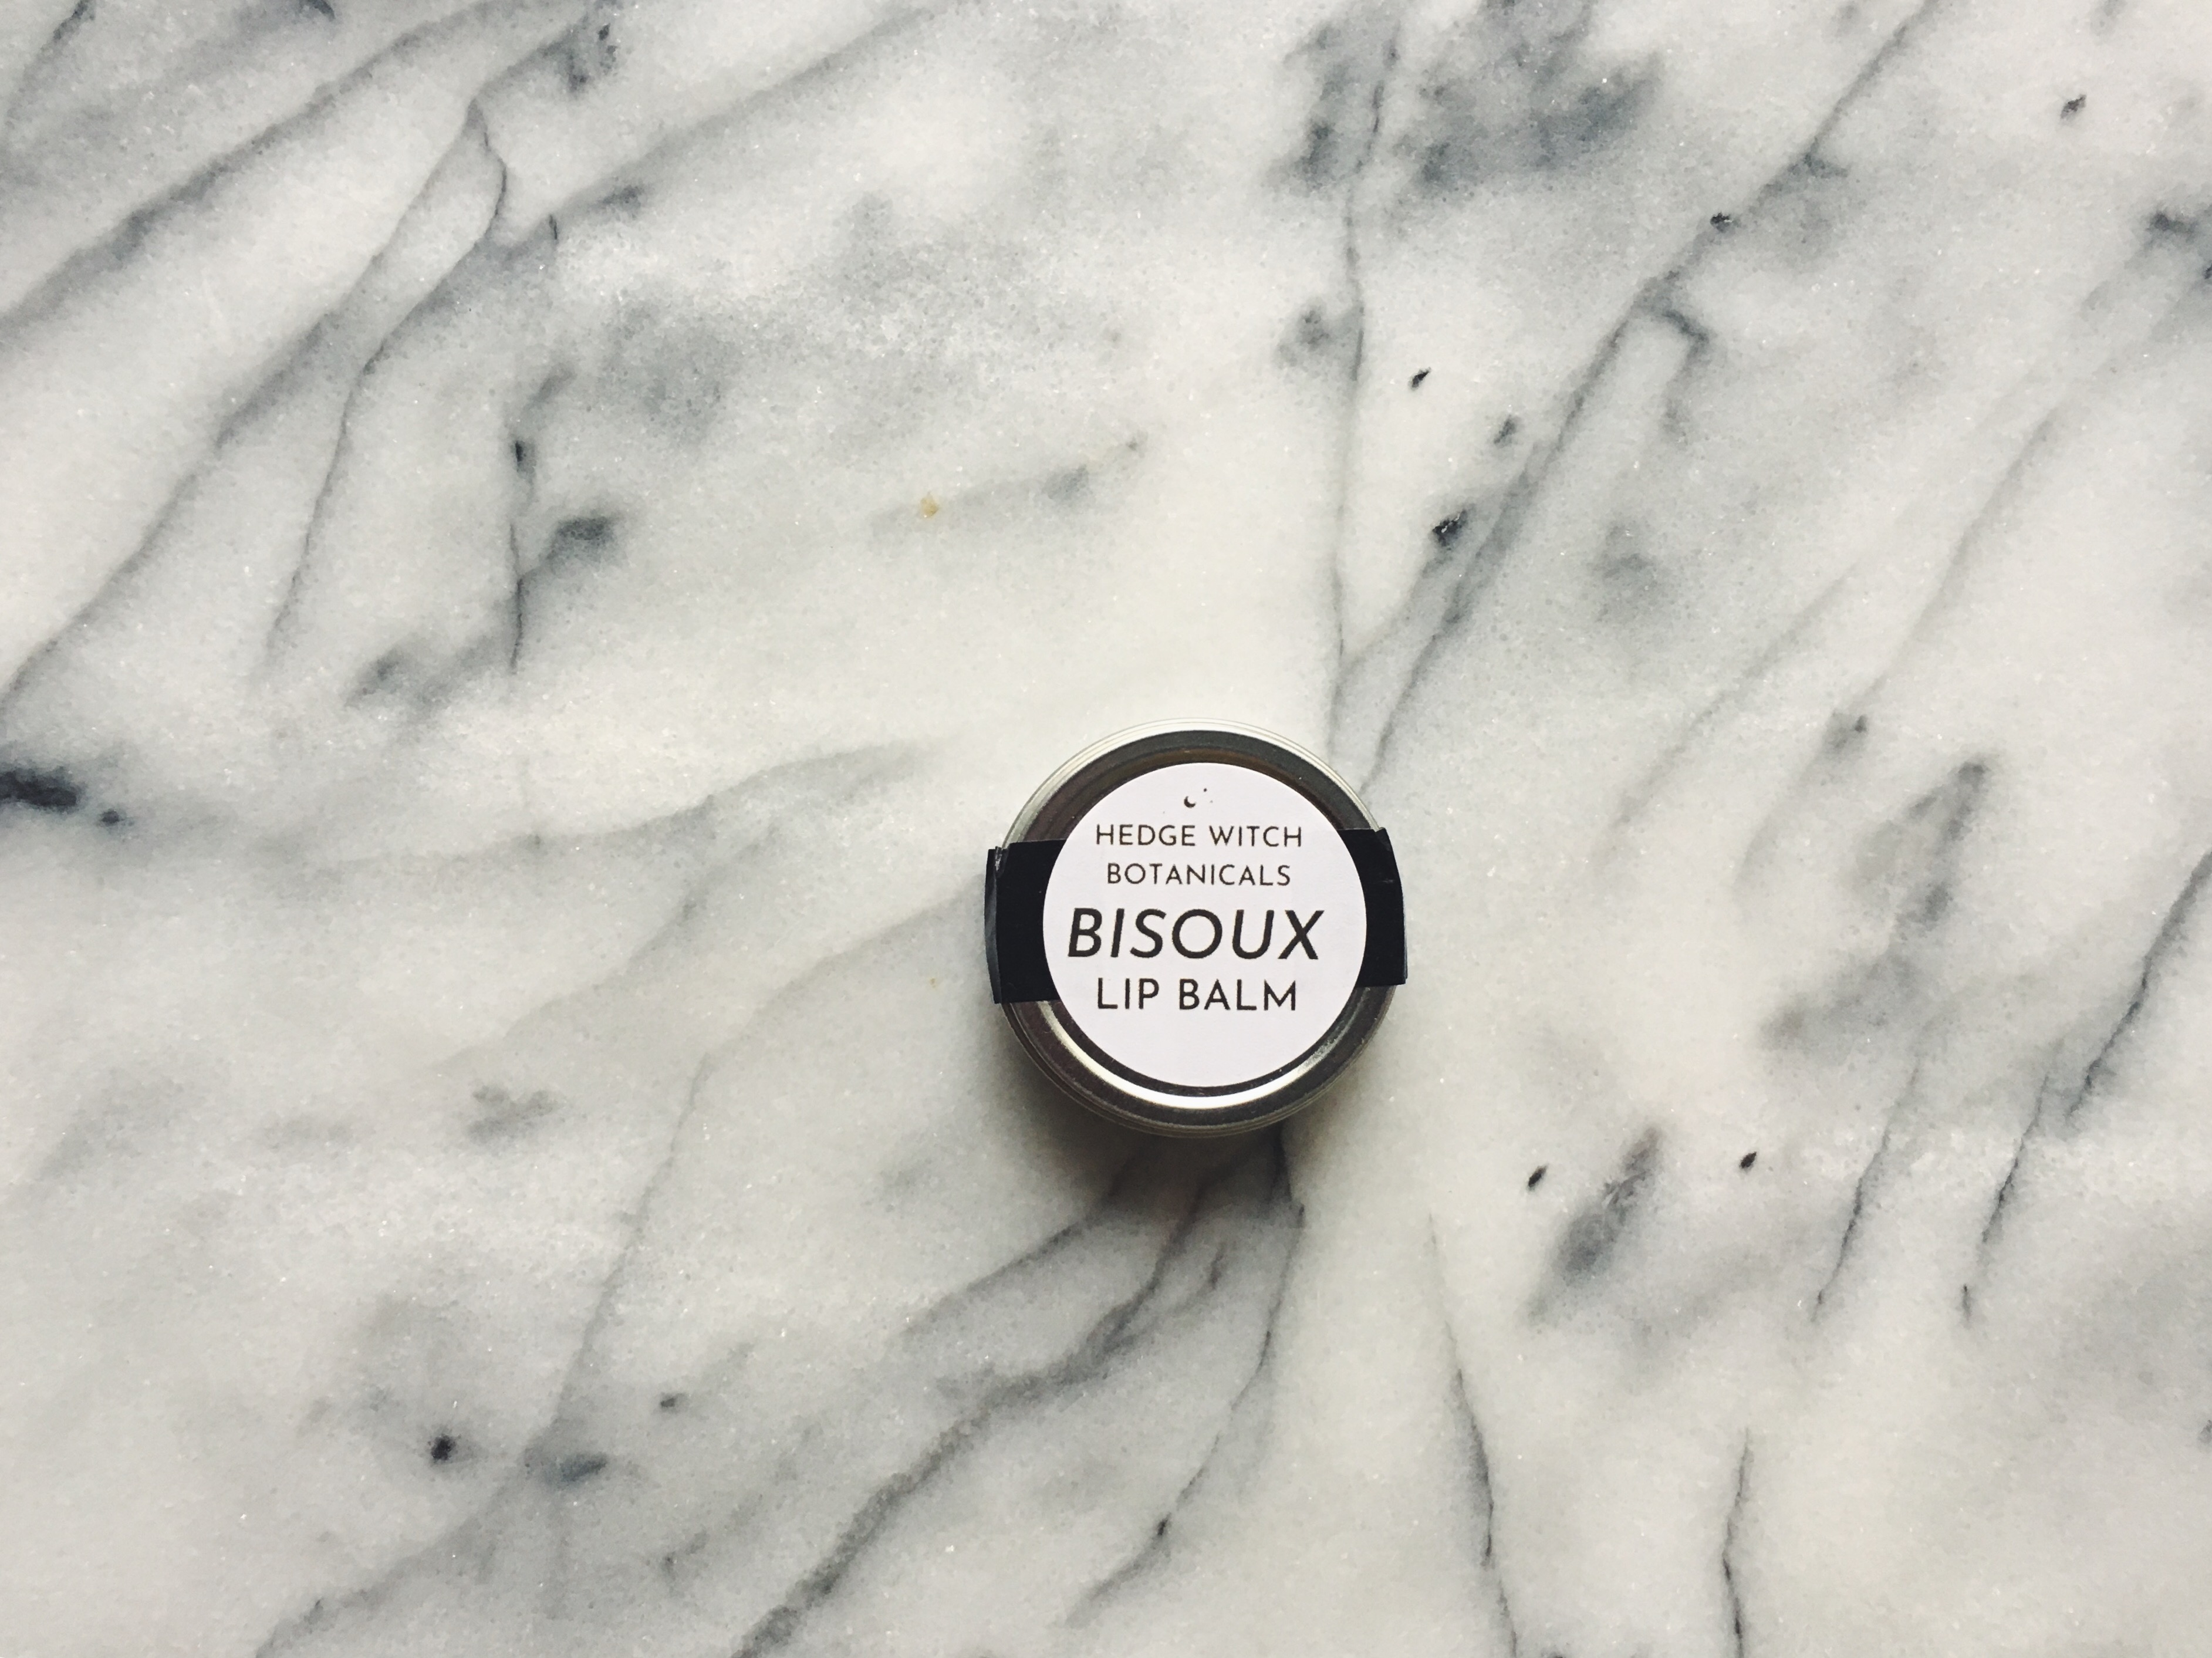 Bisoux Lip Balm